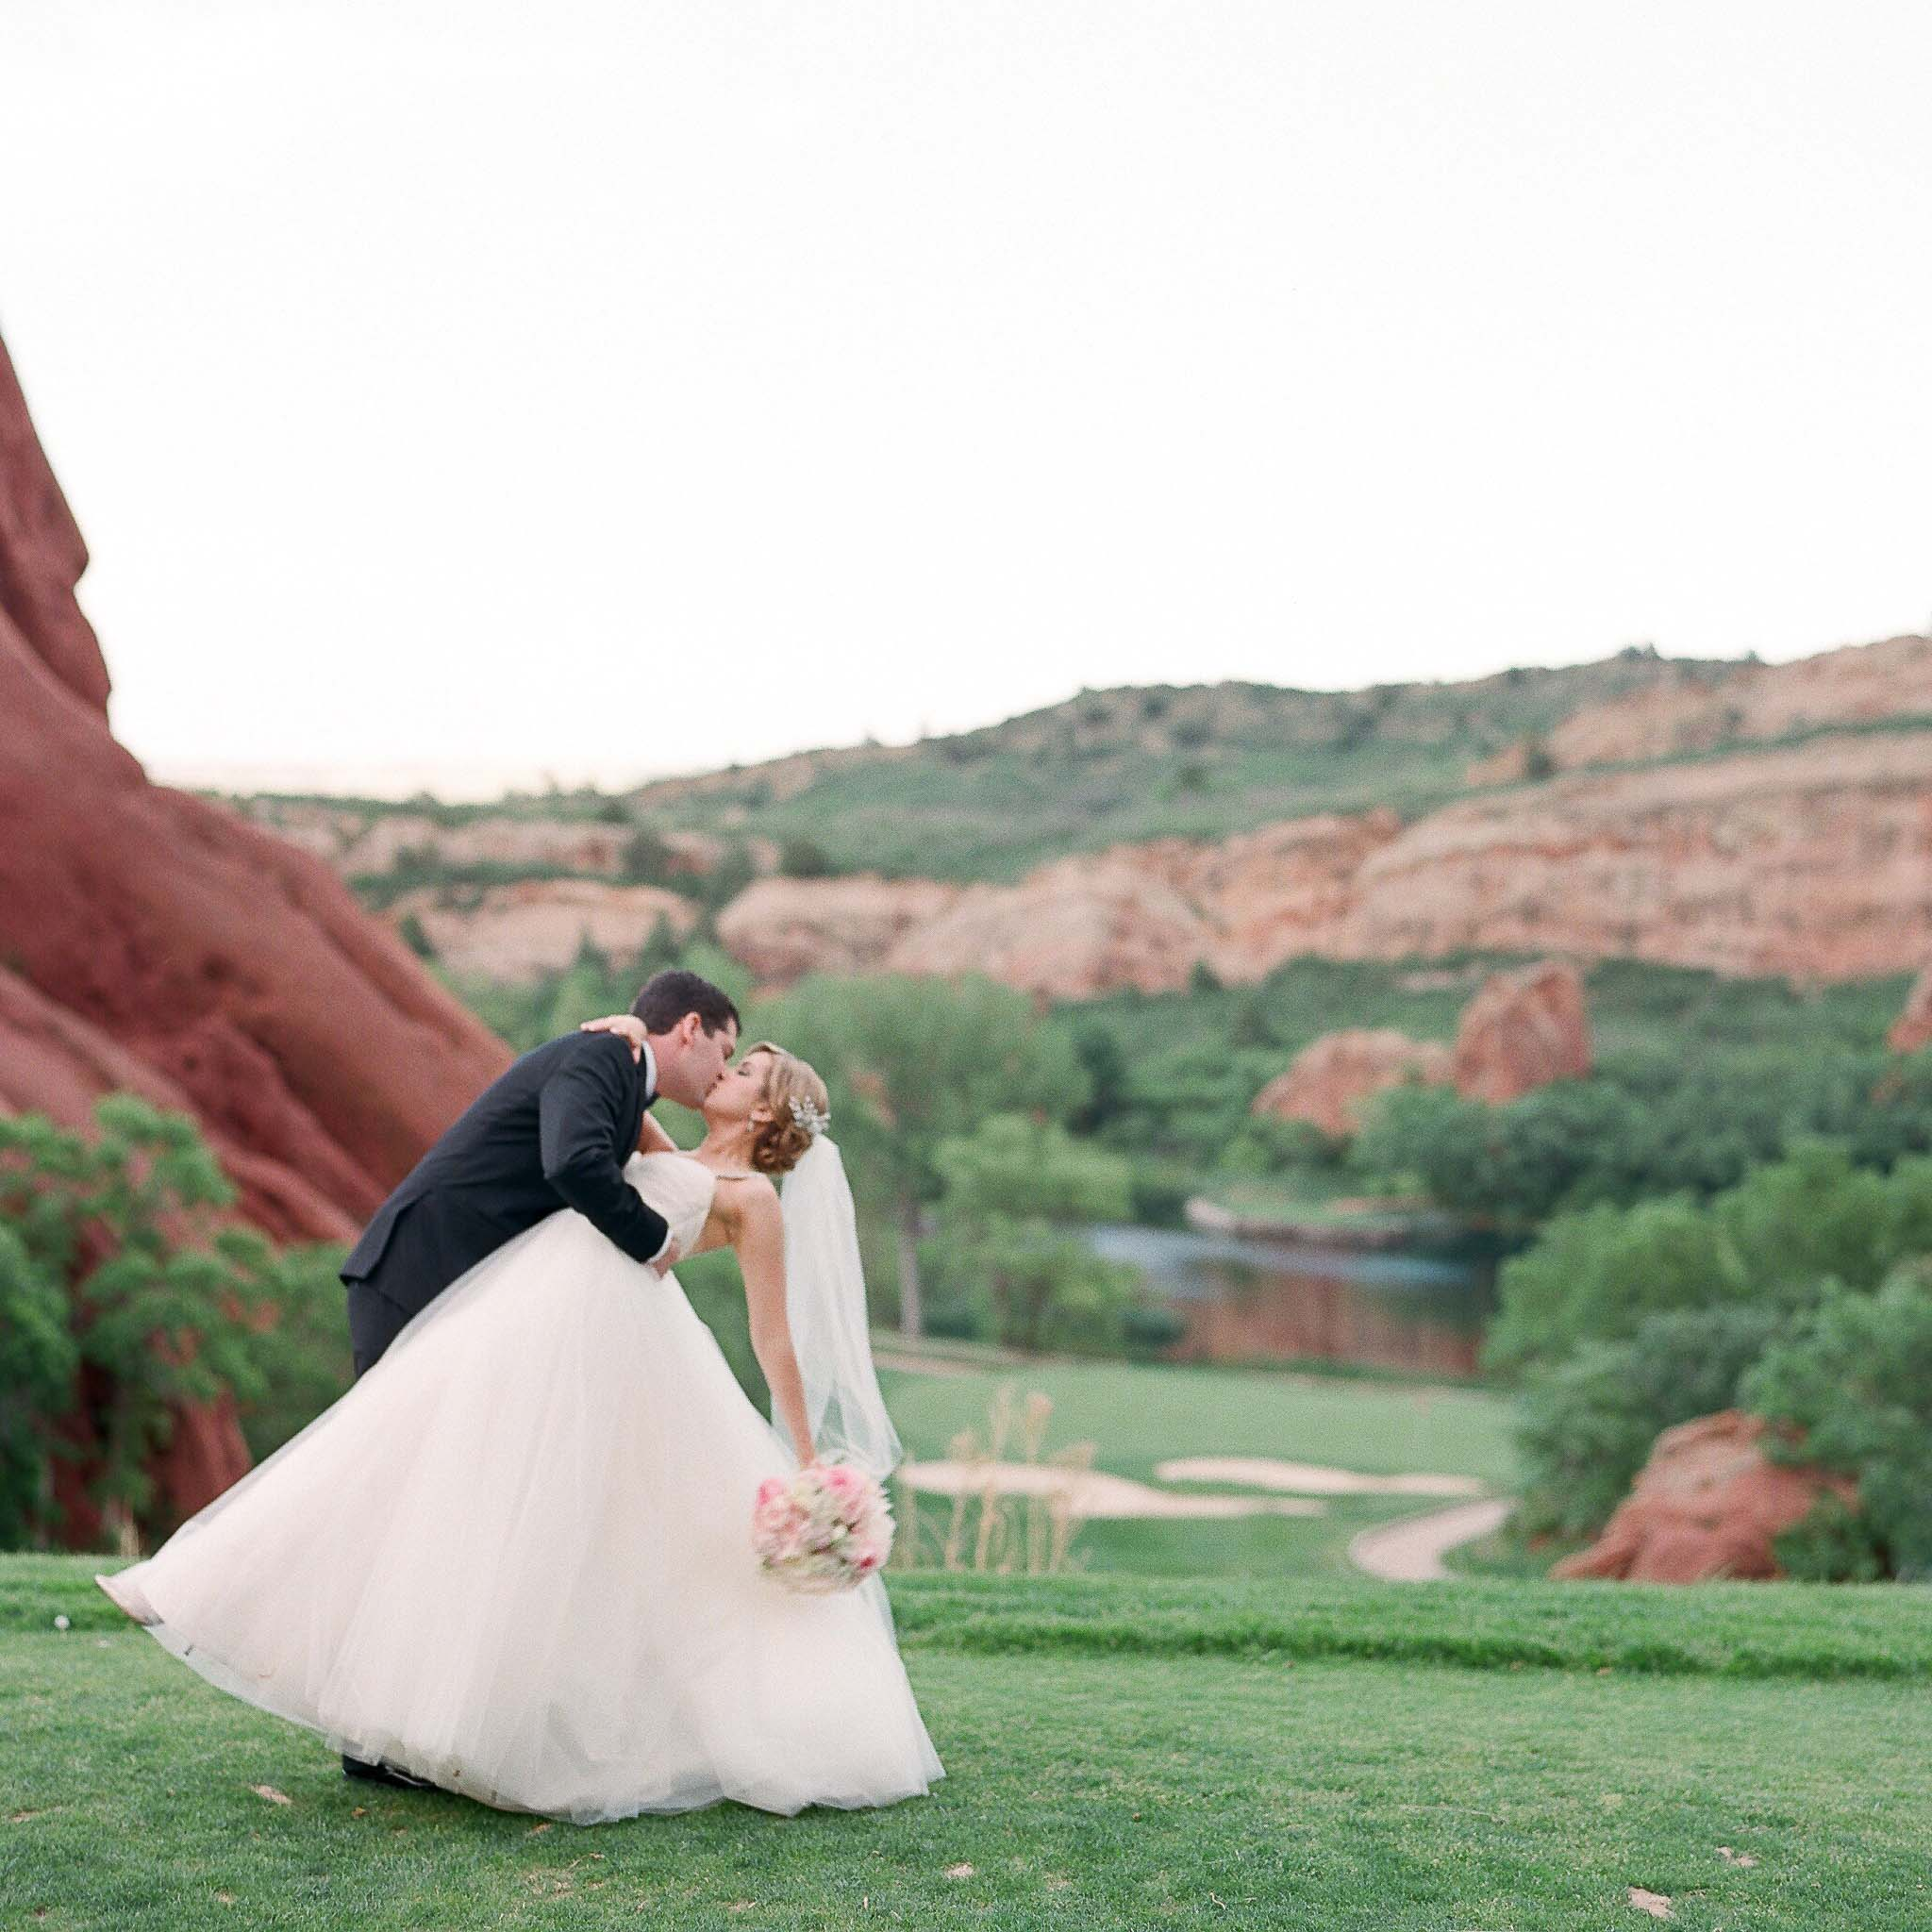 destination wedding planner colorado, denver wedding planner